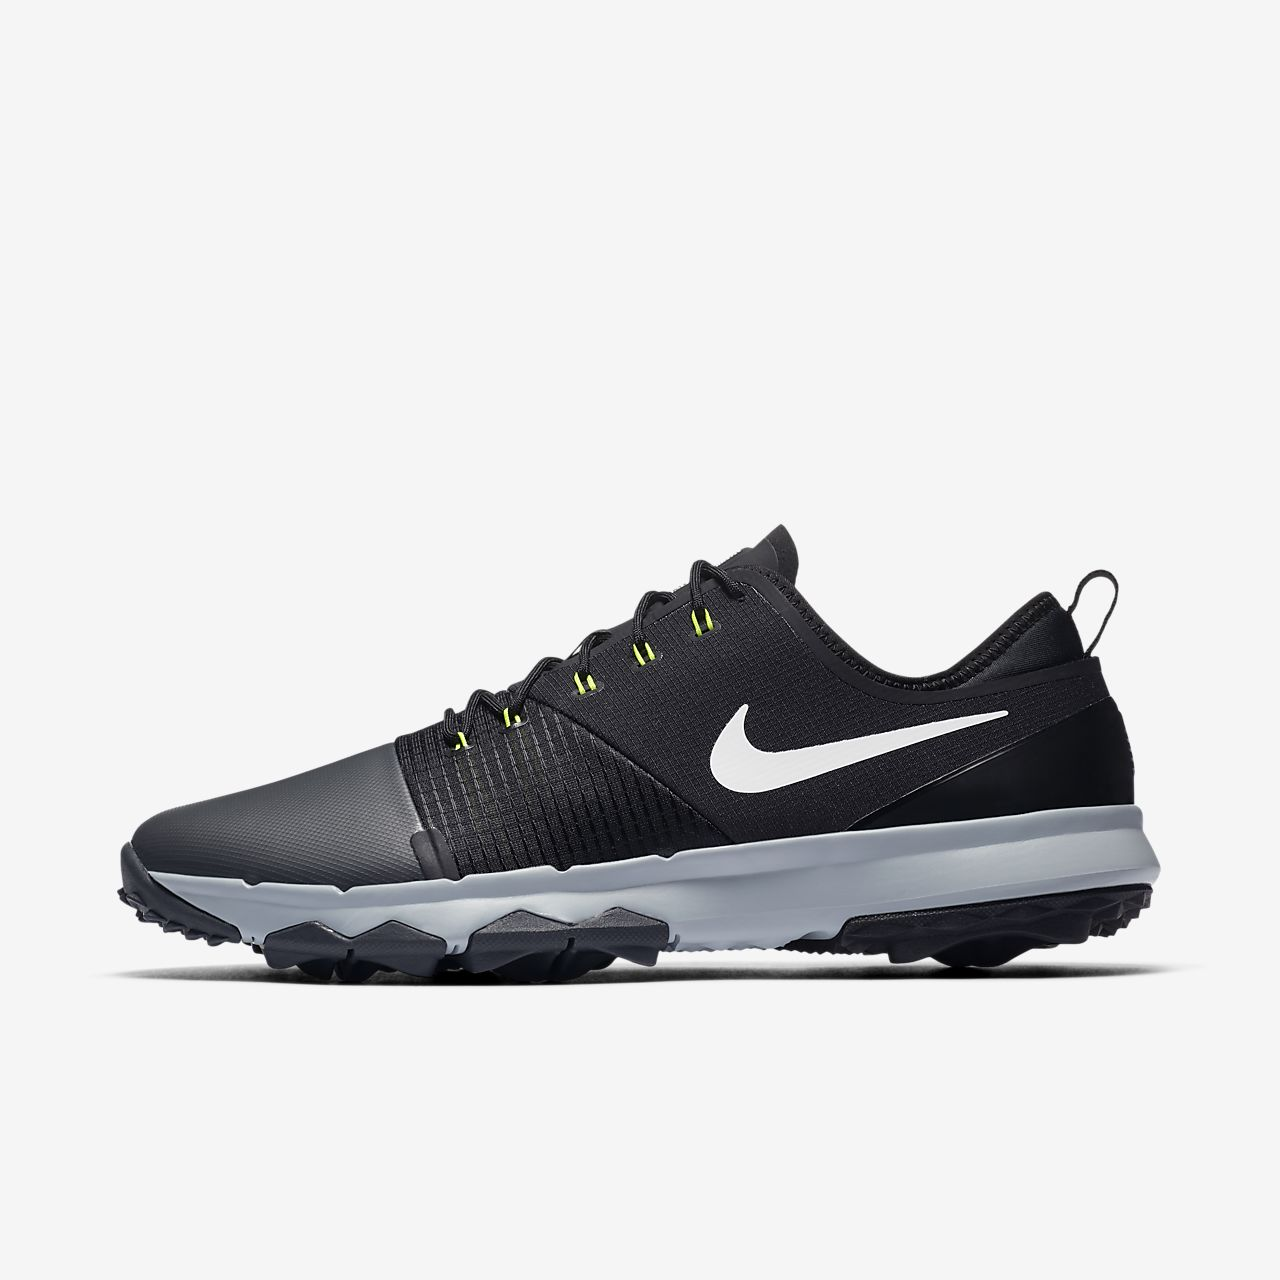 a3e191475520 Nike FI Impact 3 Men s Golf Shoe. Nike.com PT